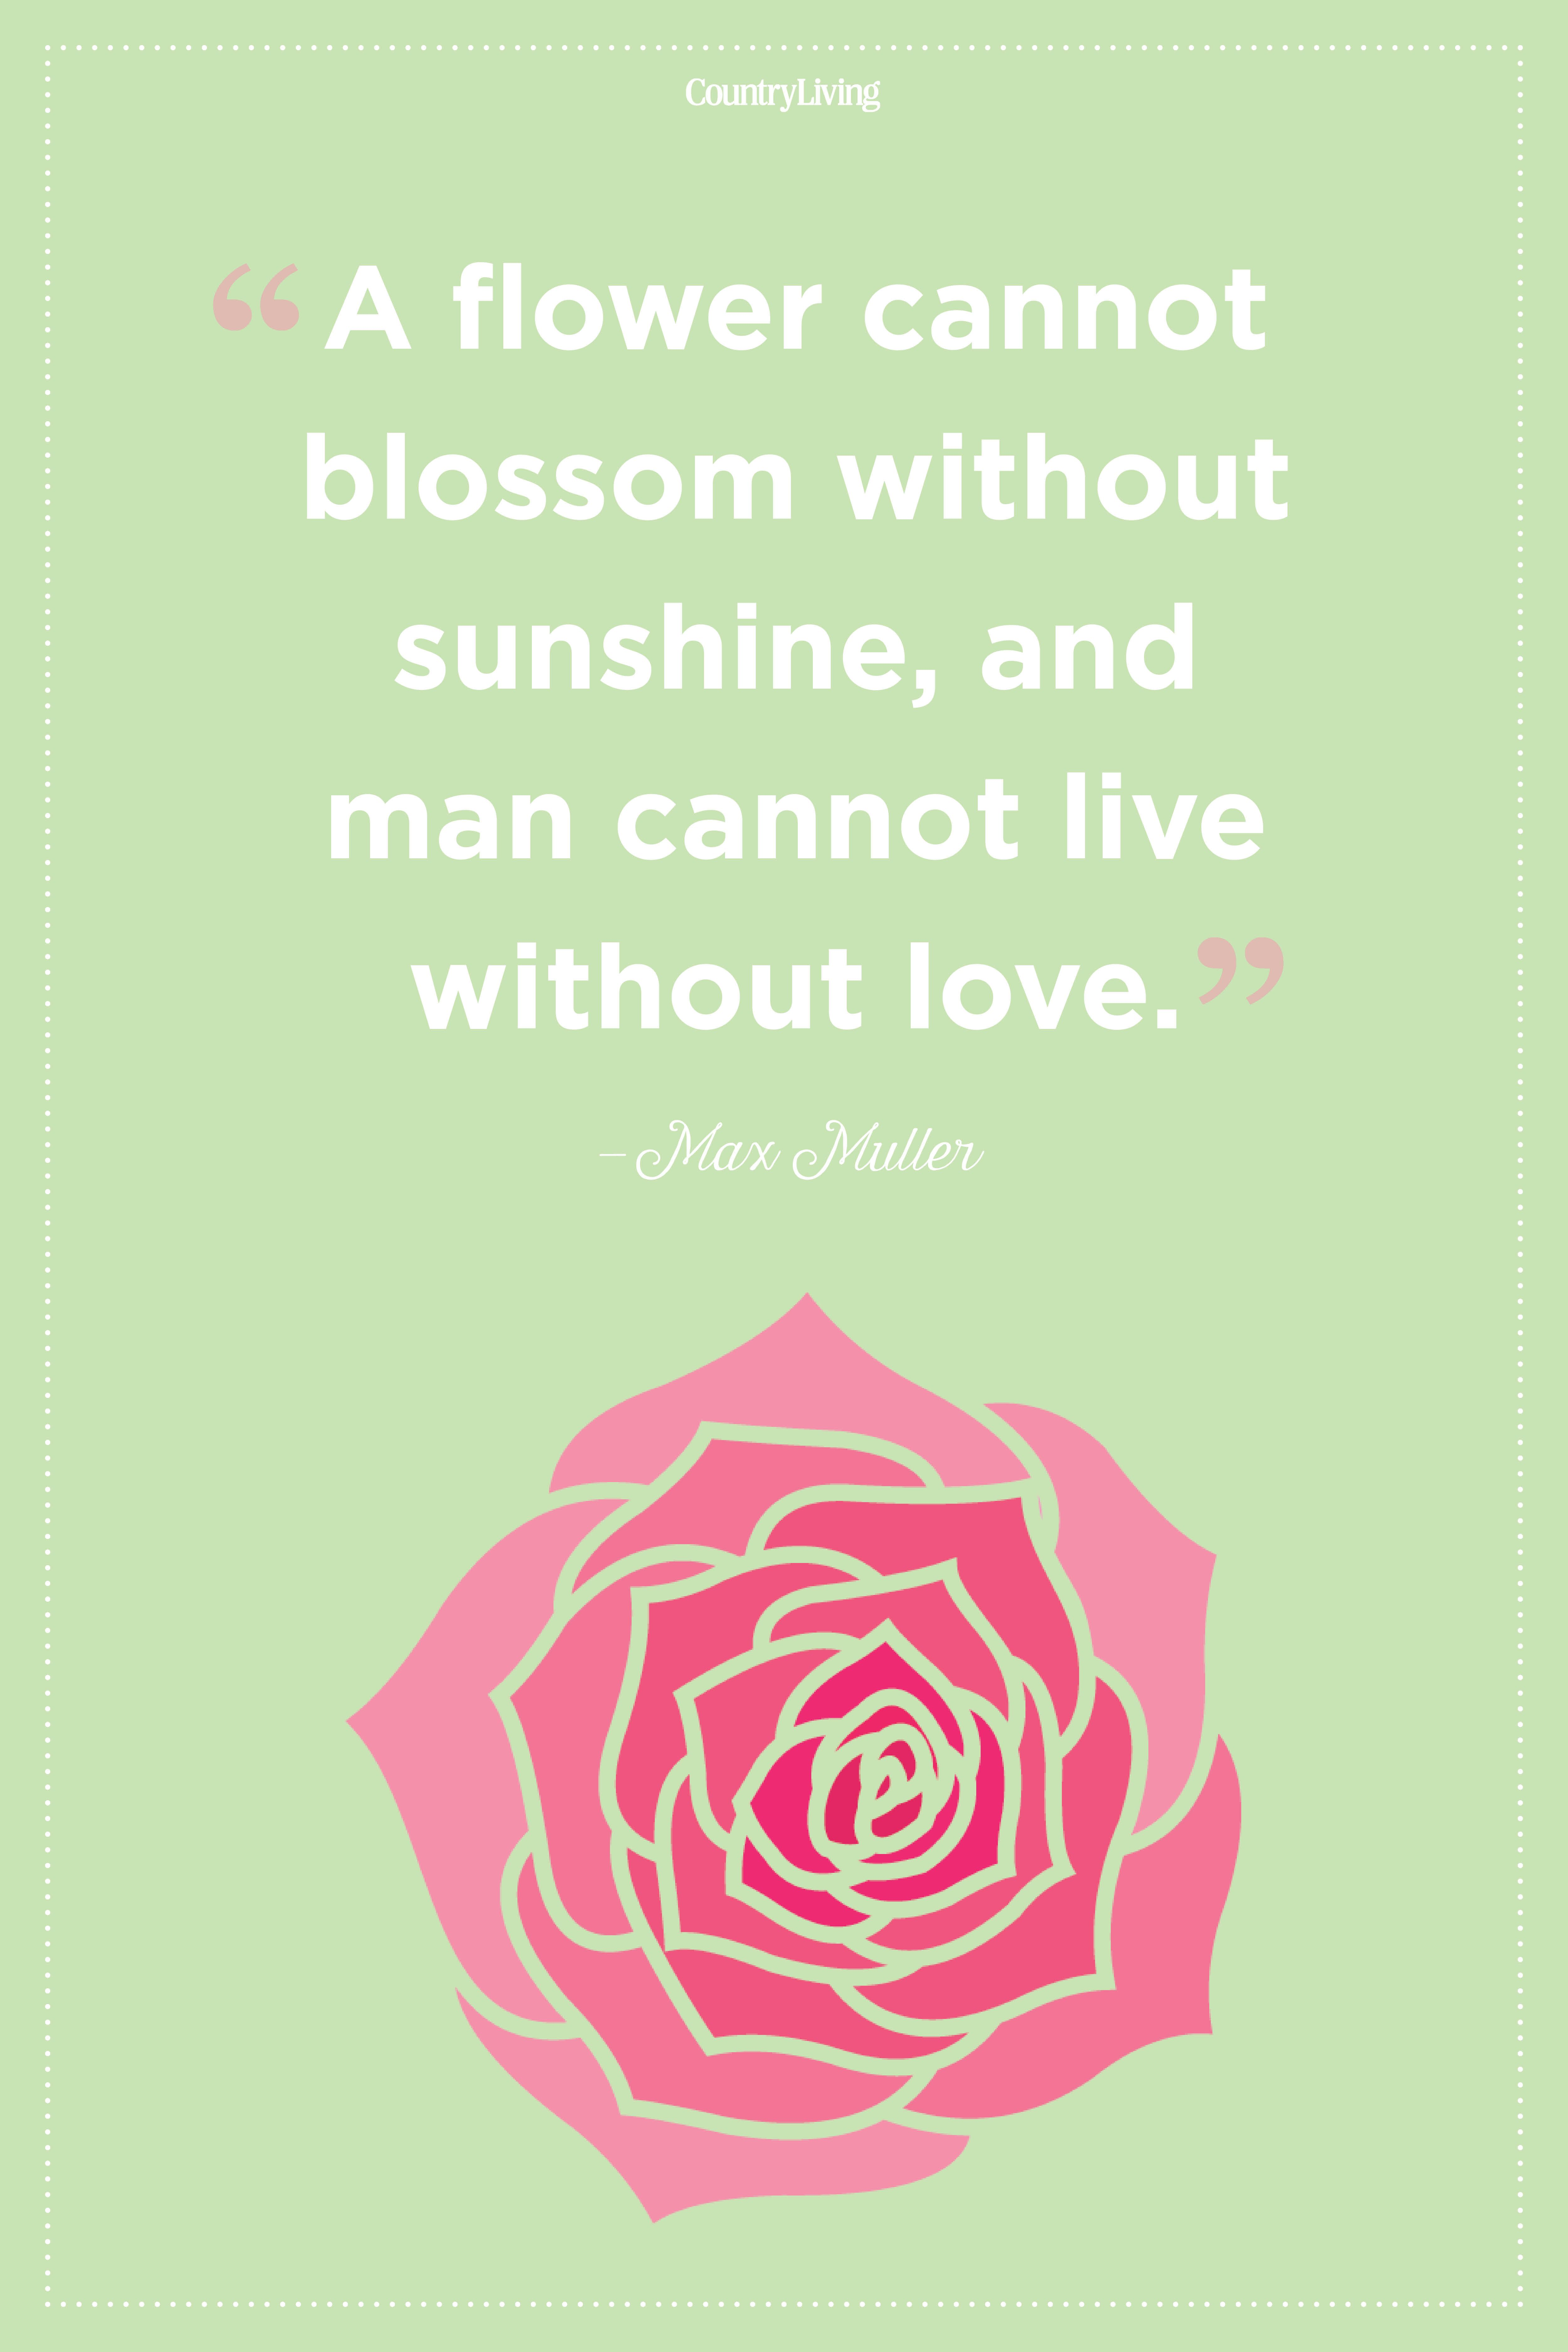 Flower Love Quotes 20 Inspirational Flower Quotes   Cute Flower Sayings About Life  Flower Love Quotes